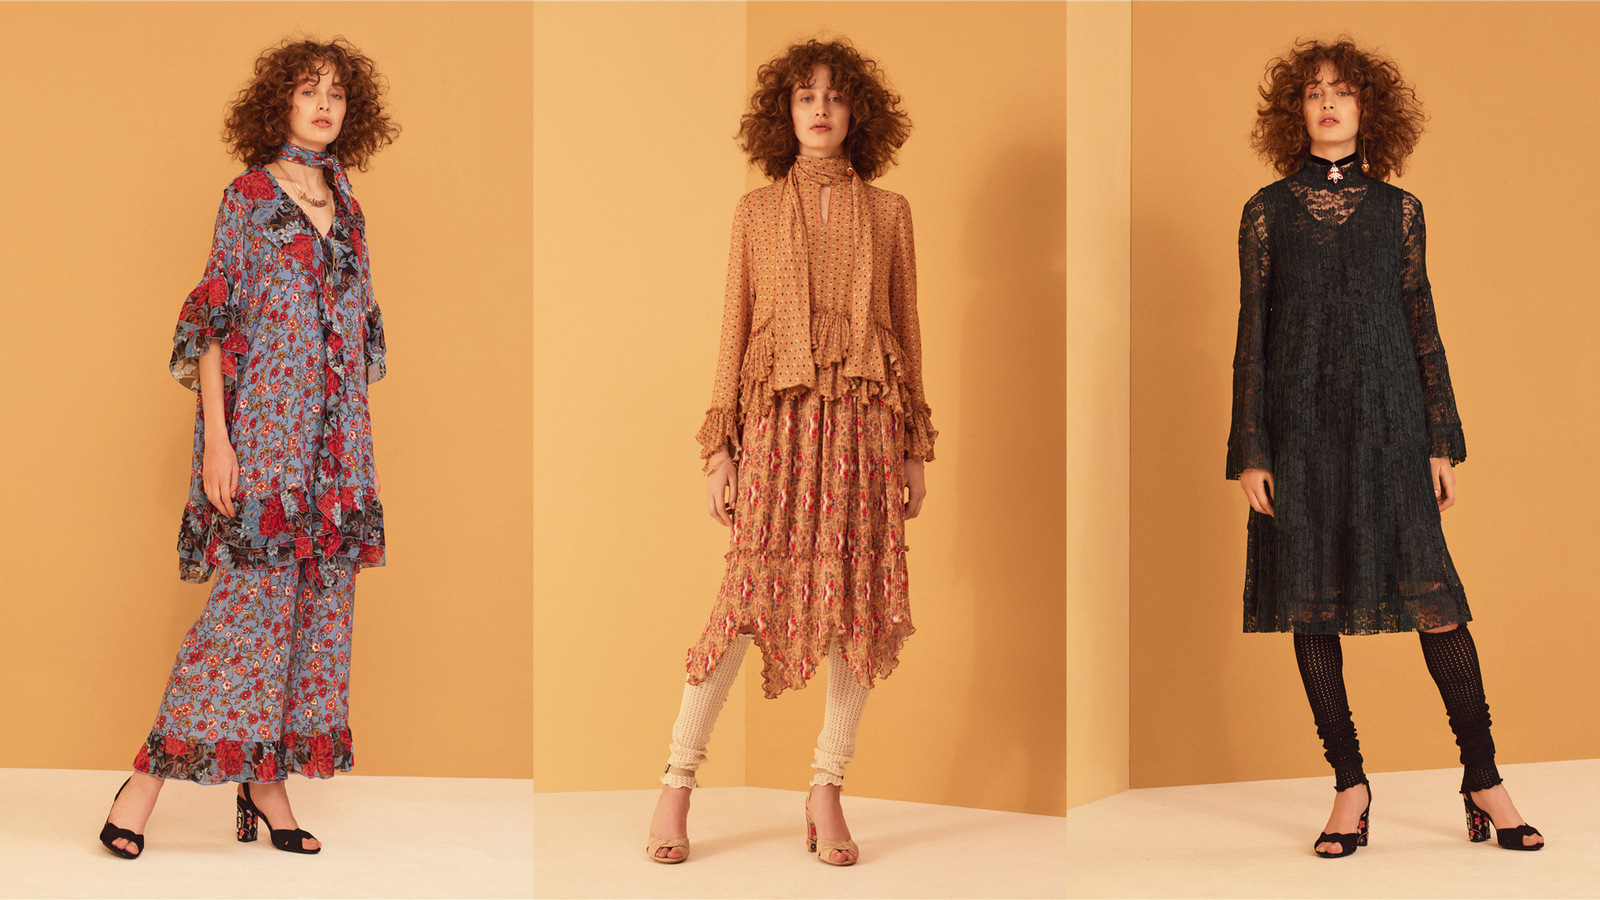 Communication on this topic: See by Chloé Pre-Fall 2019 Collection, see-by-chlo-pre-fall-2019-collection/